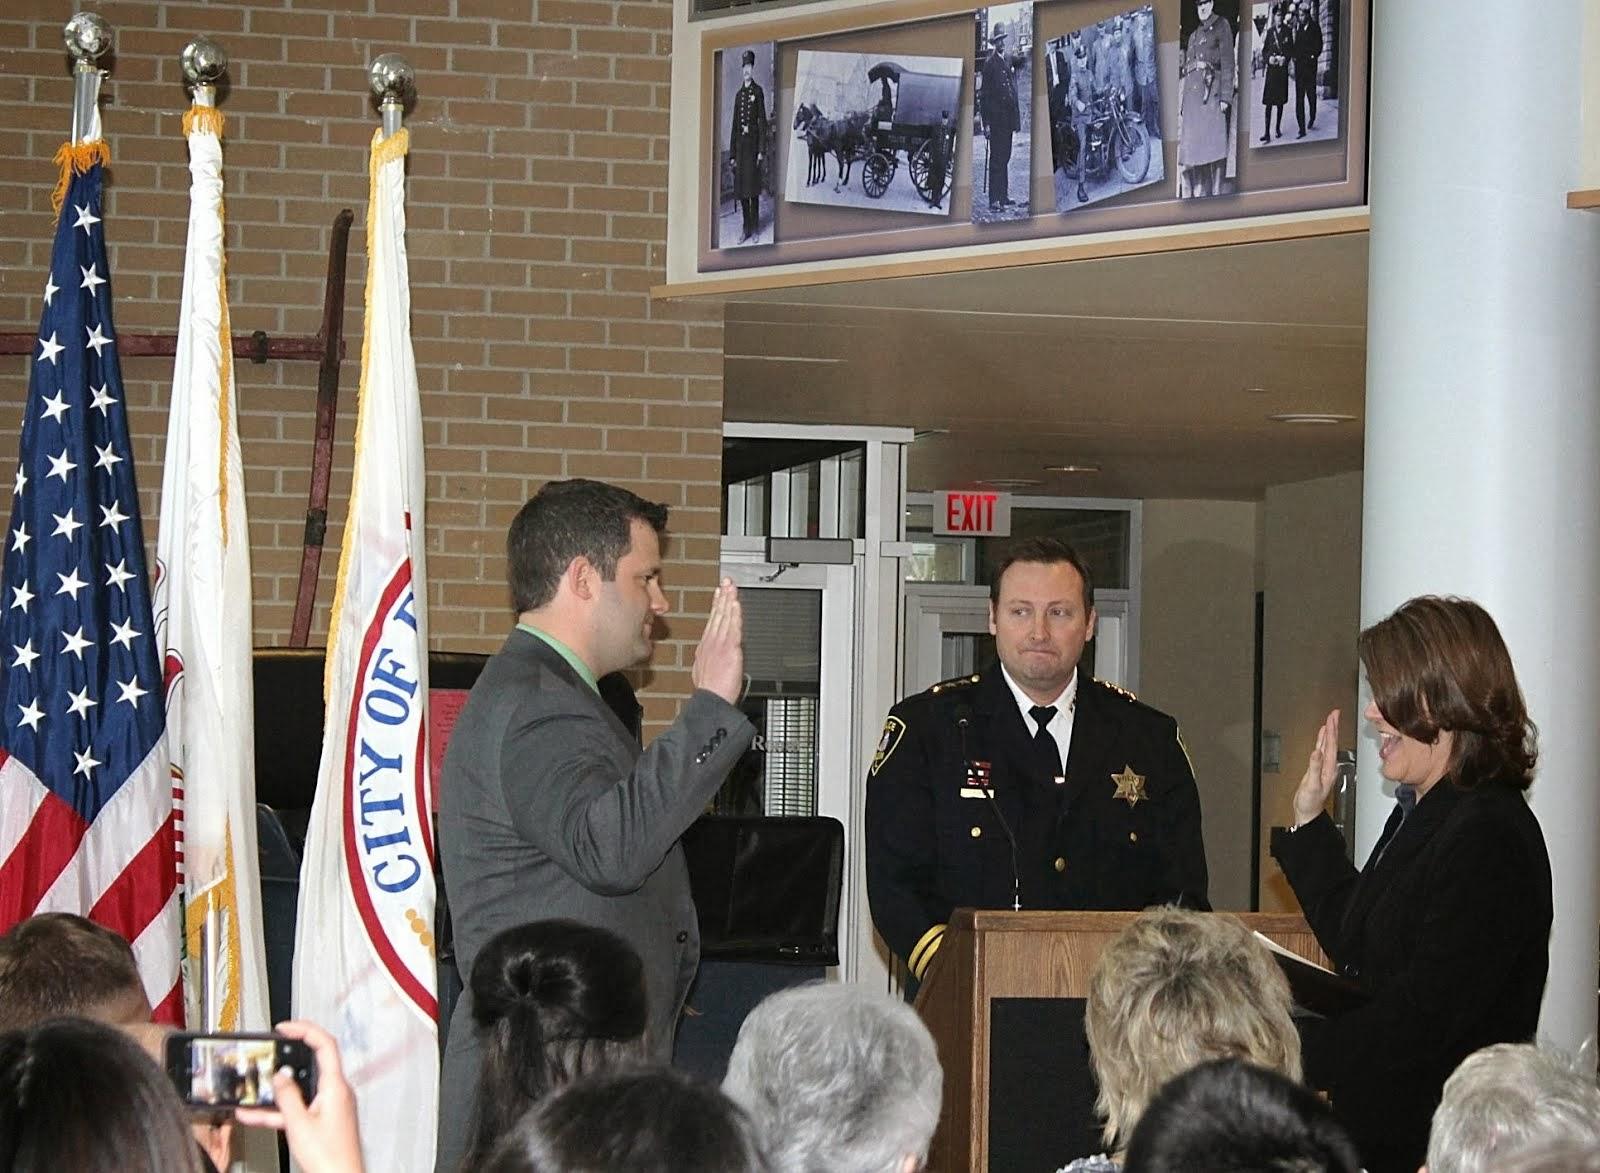 My son joins the Elgin Police Department